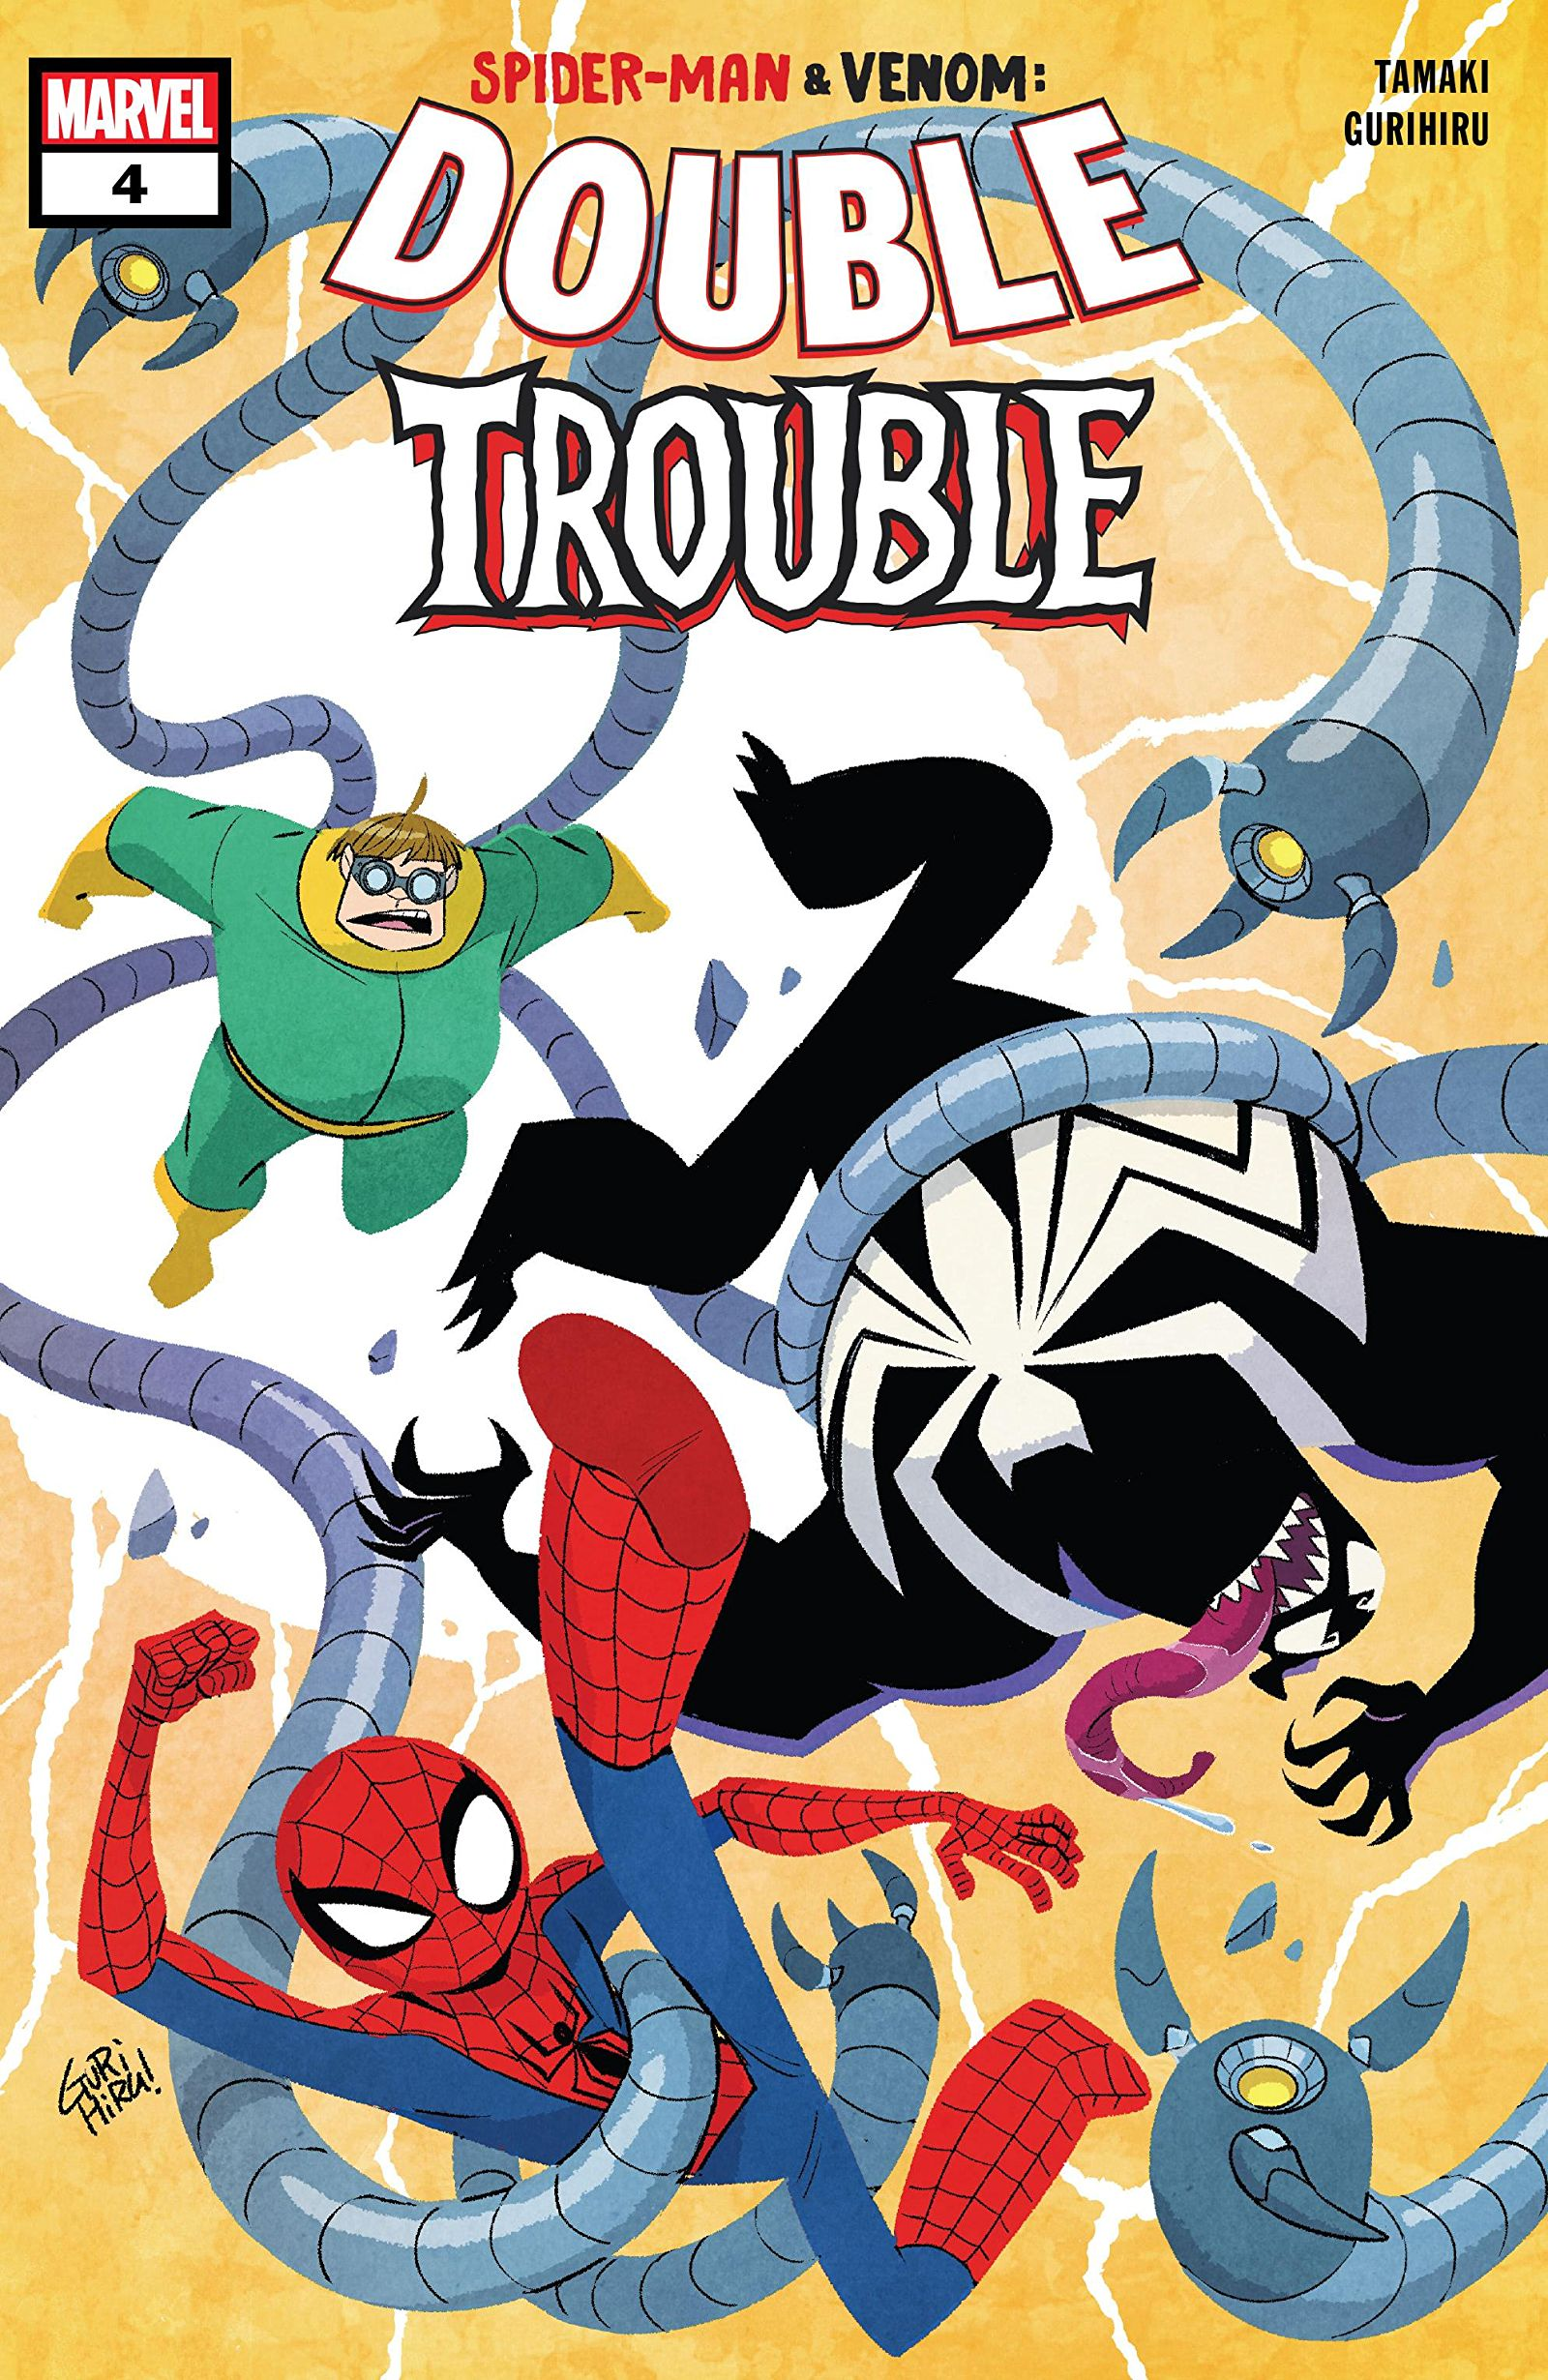 Spider-Man & Venom: Double Trouble Vol 1 4